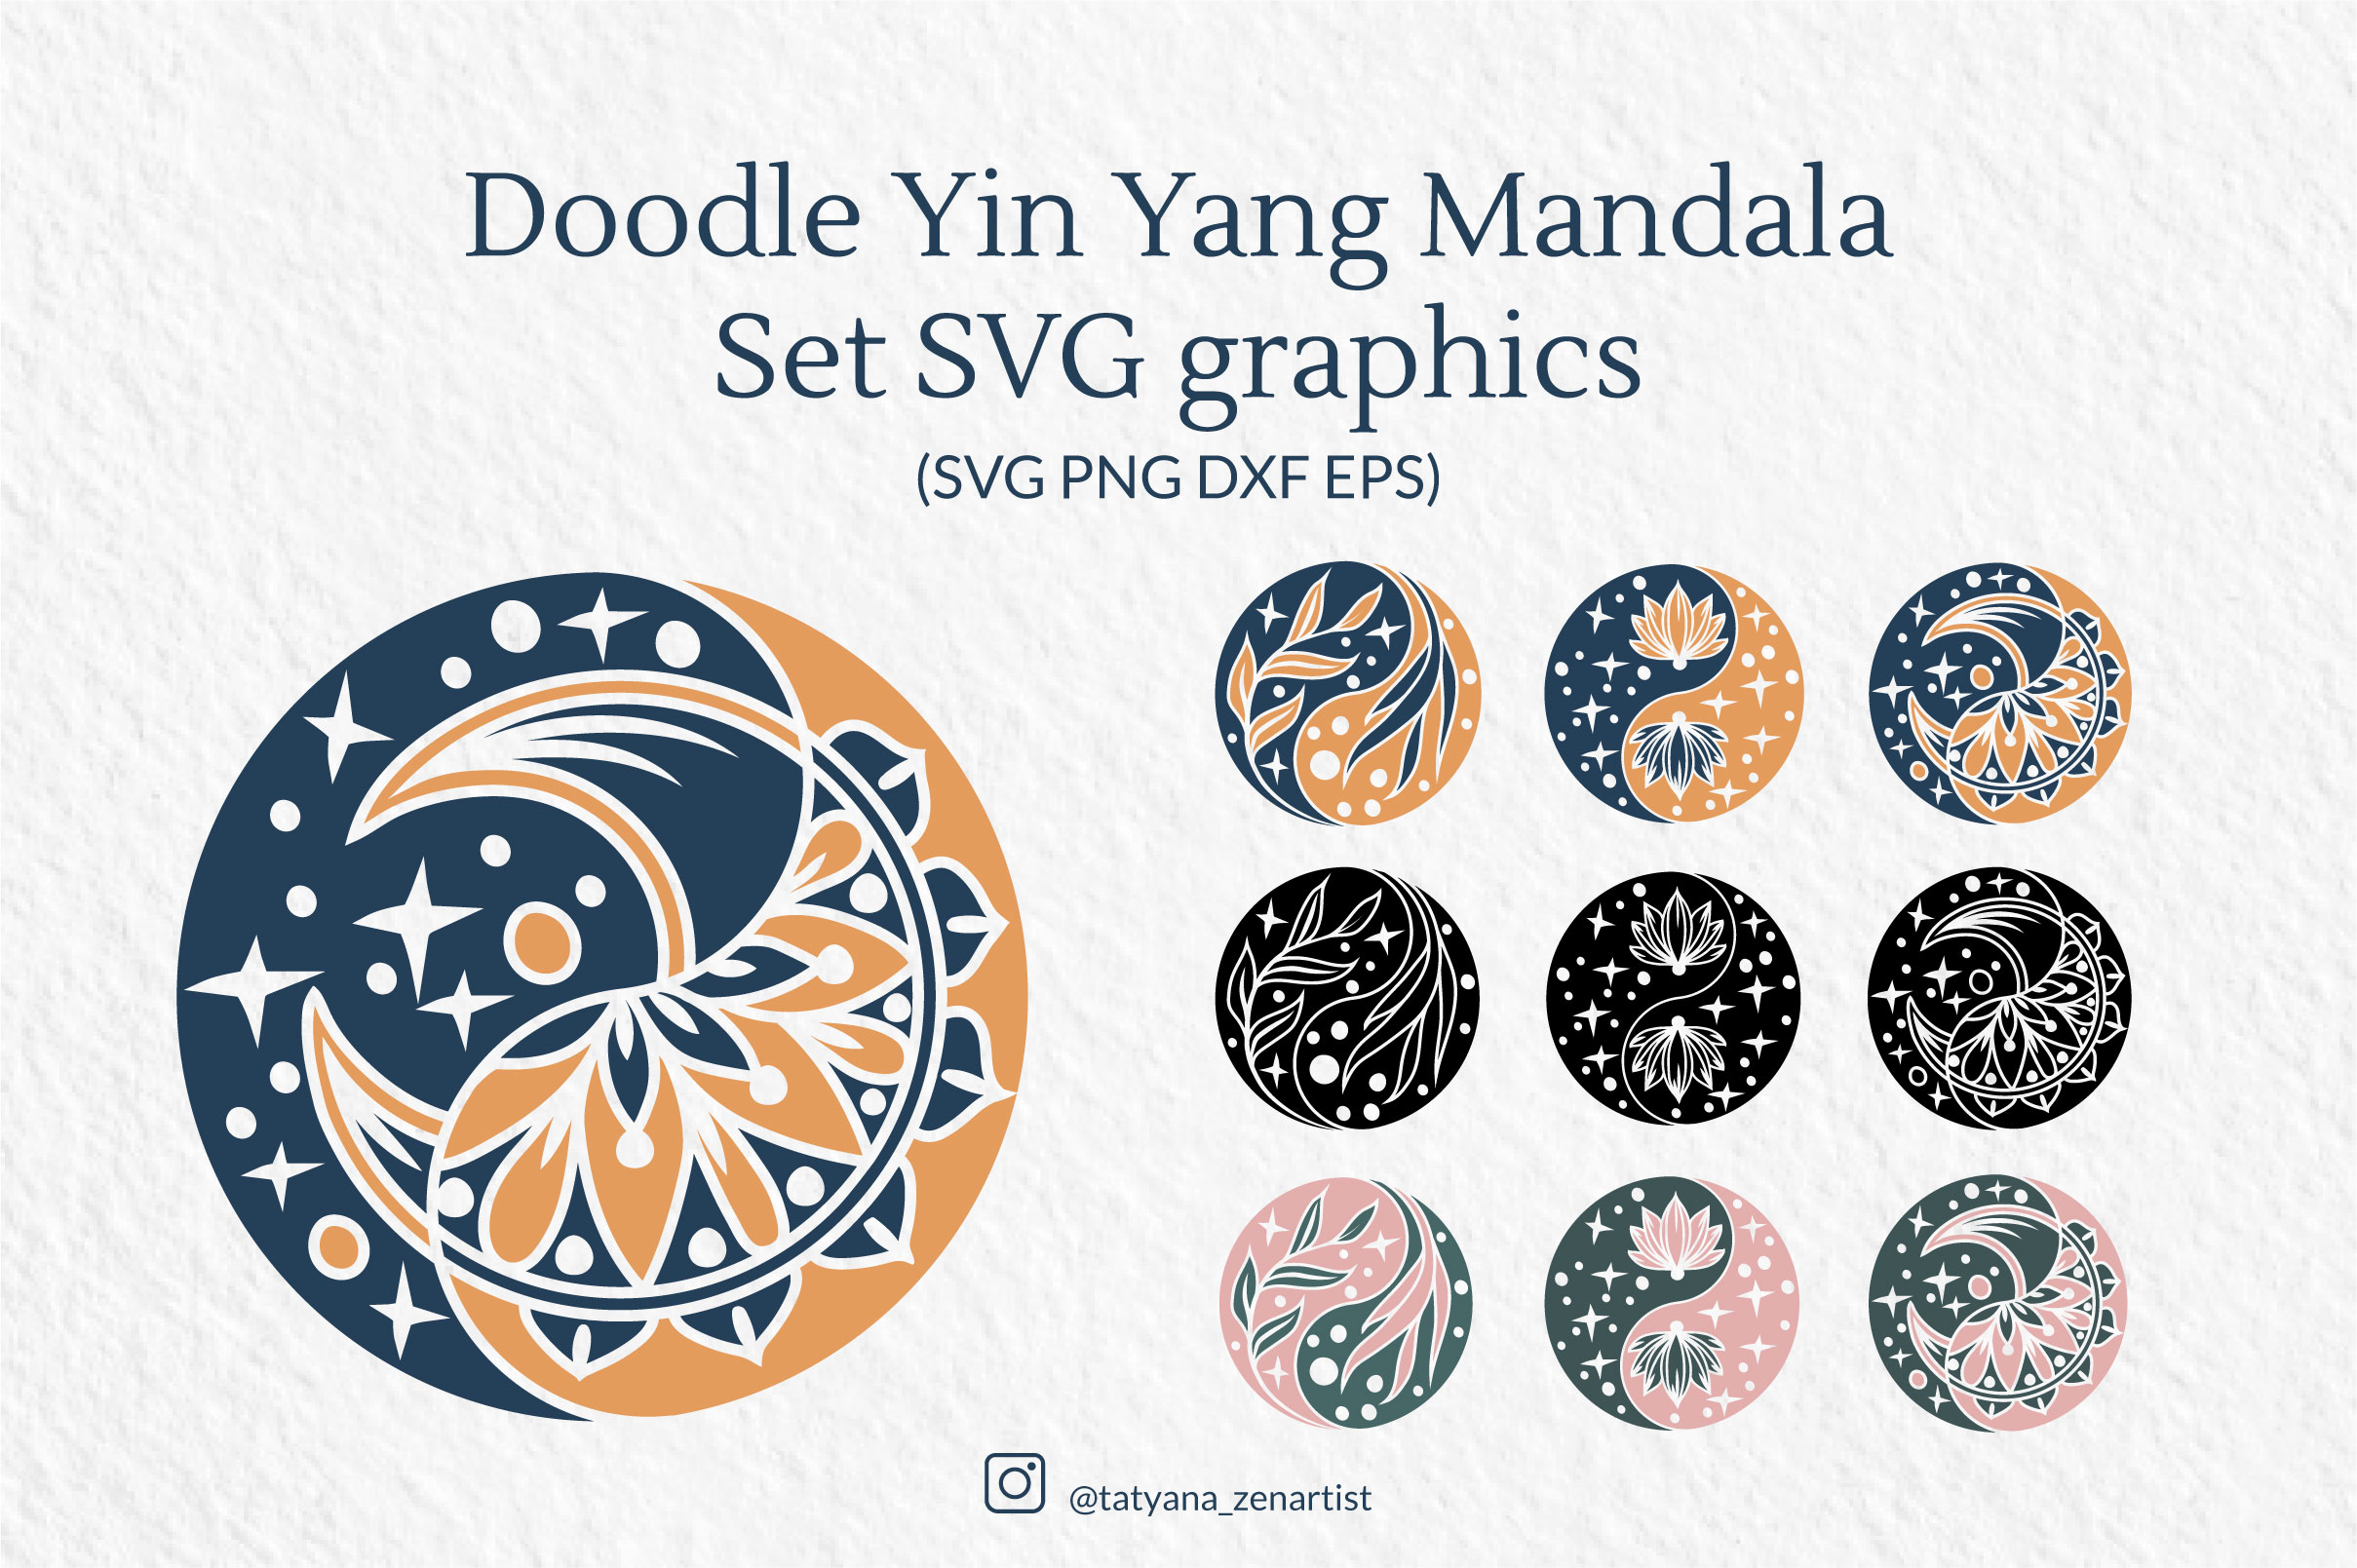 Download Free Doodle Yin Yang Mandala Set Graphic By Tatyana Zenartist for Cricut Explore, Silhouette and other cutting machines.